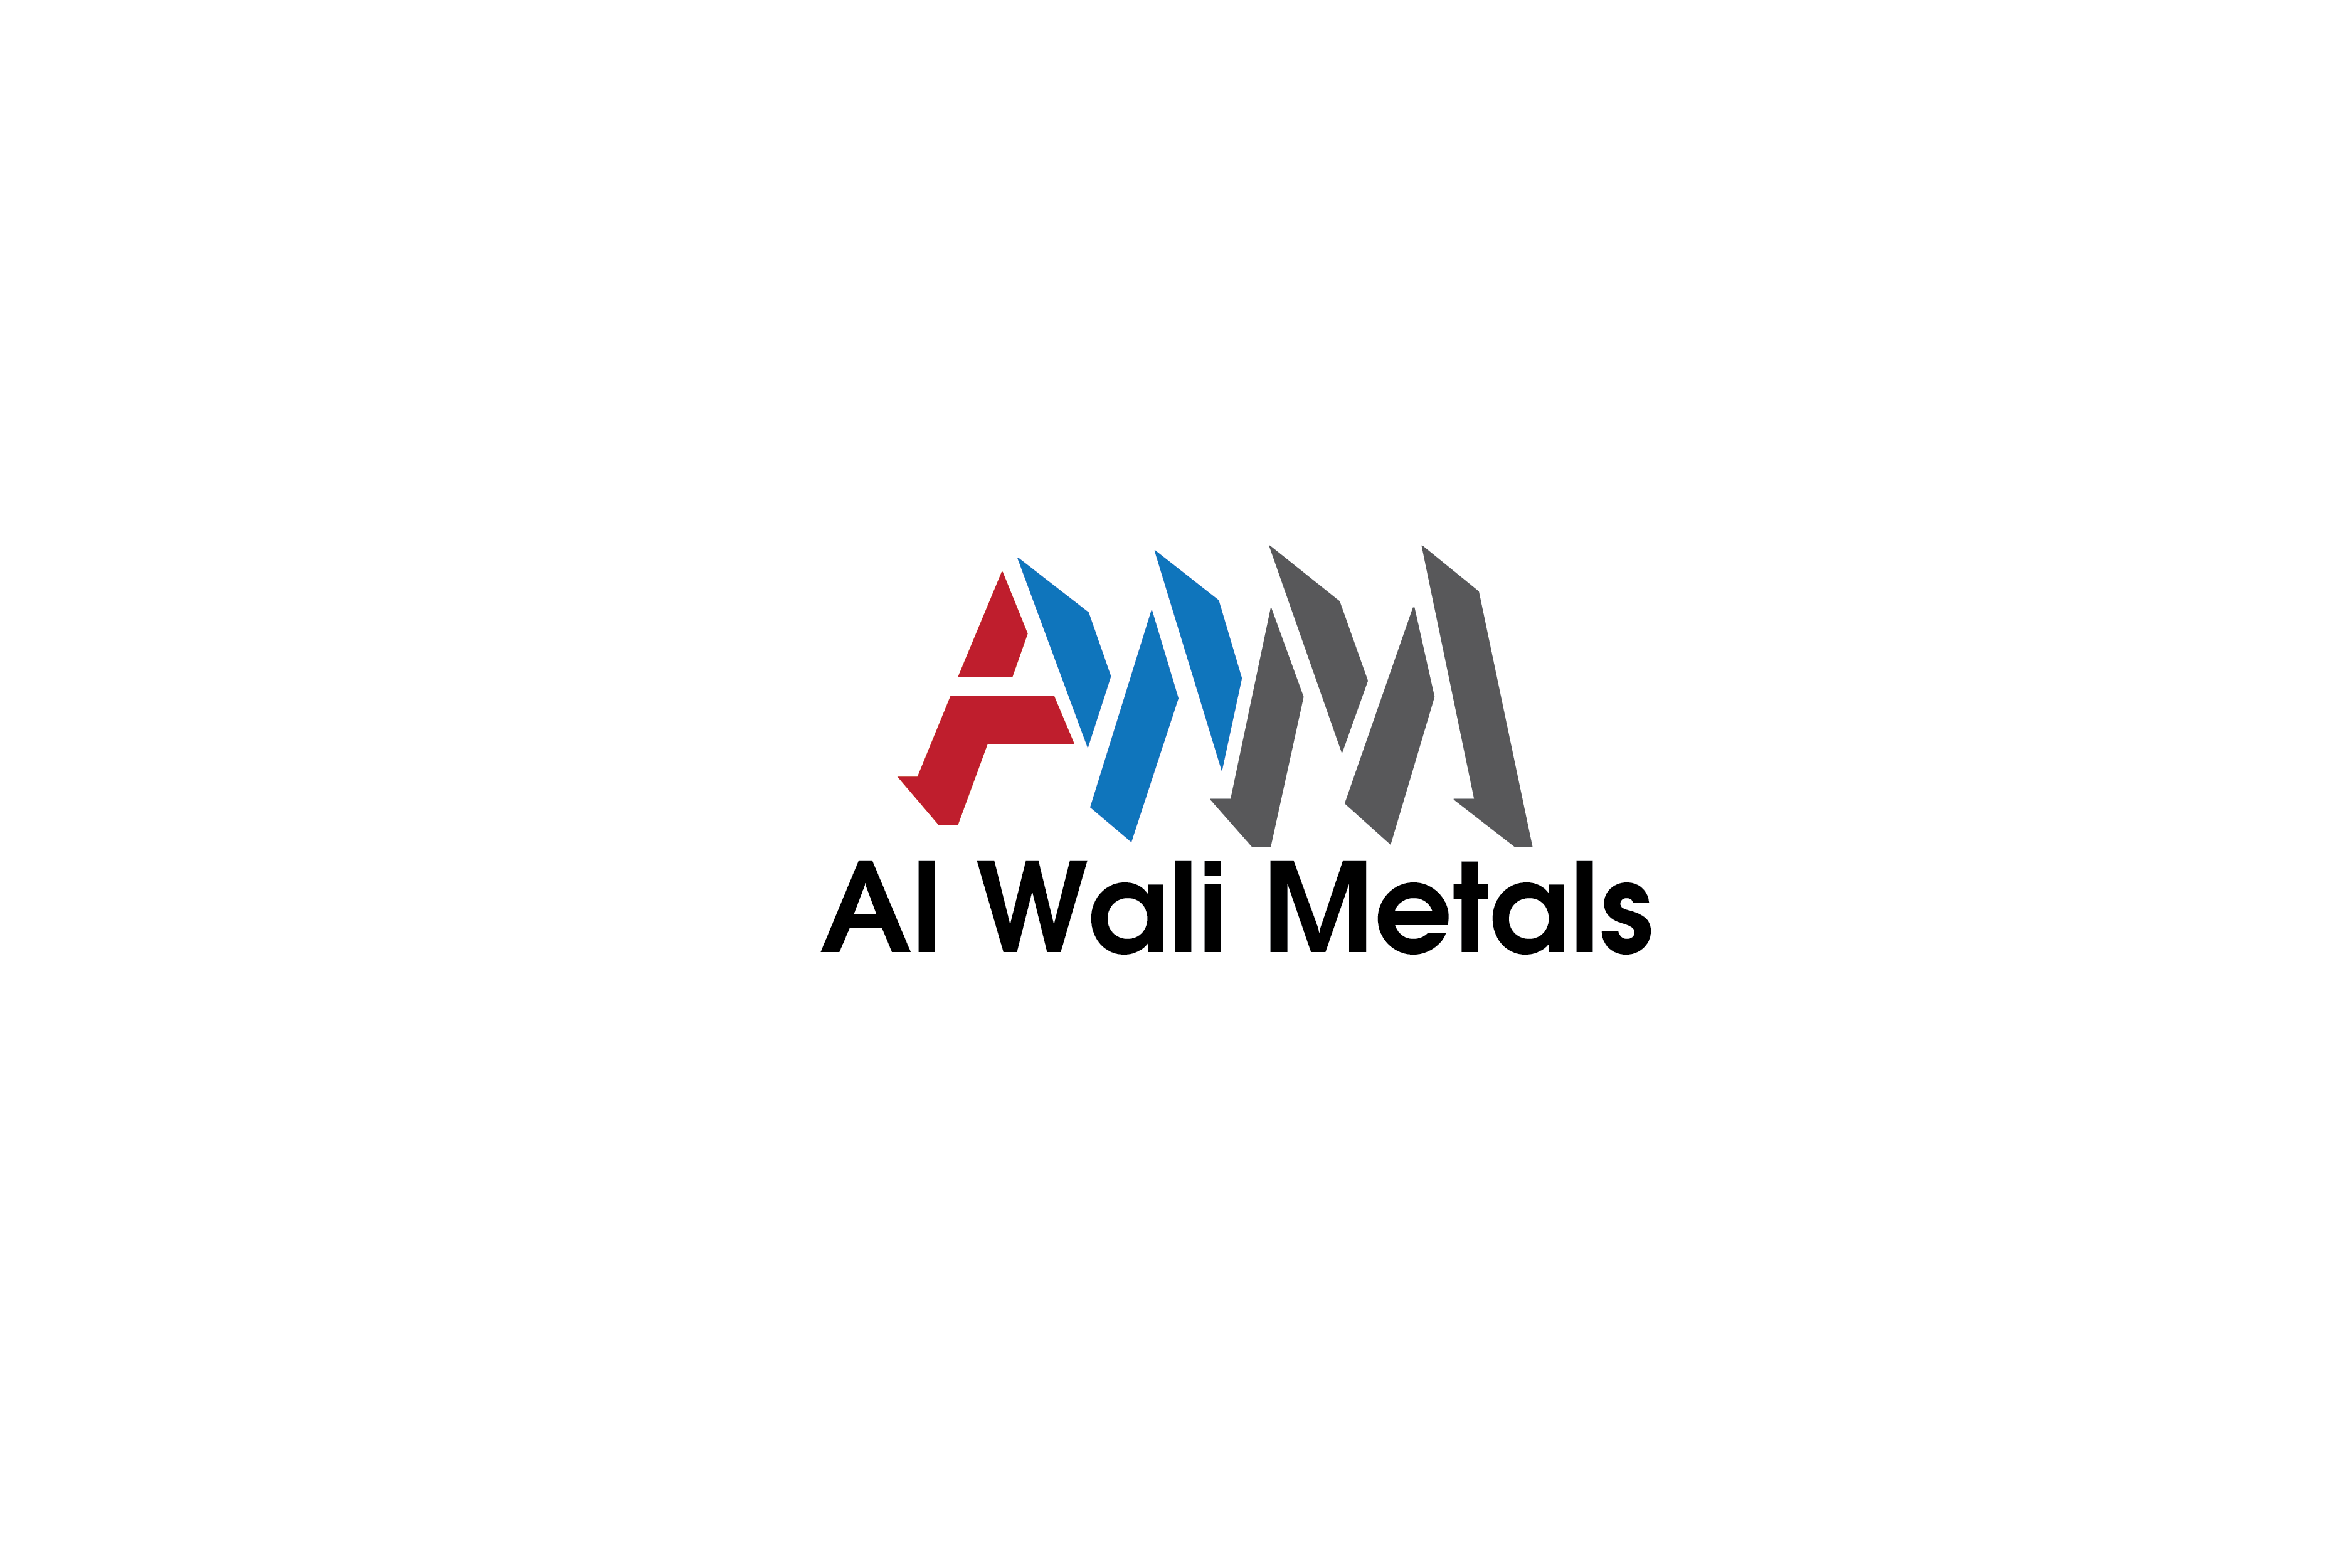 Logo Design by Private User - Entry No. 162 in the Logo Design Contest Inspiring Logo Design for Al Wali Metals.